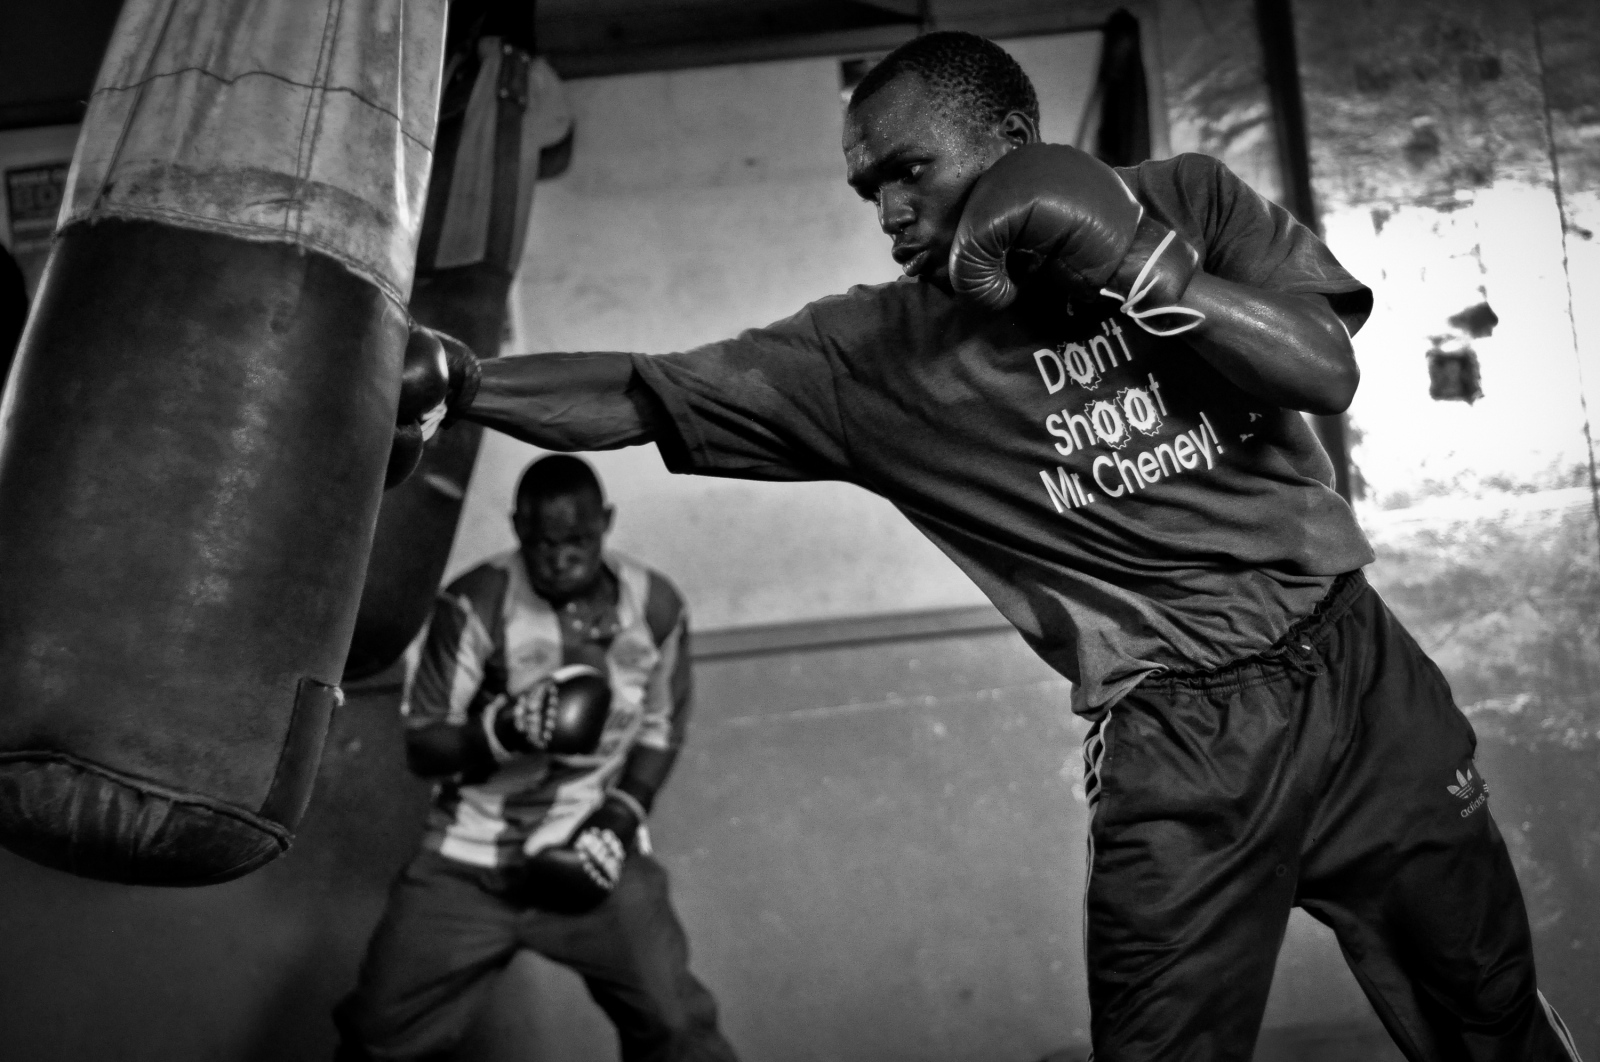 """Photography image - A boxer wearing a """"Don't Shoot Mr. Cheney"""" secondhand t-shirt, bought from one of Nairobi's many second hand clothing markets, practices boxing at a gym in the Nairobi neighborhood of Pamwane, Kenya."""